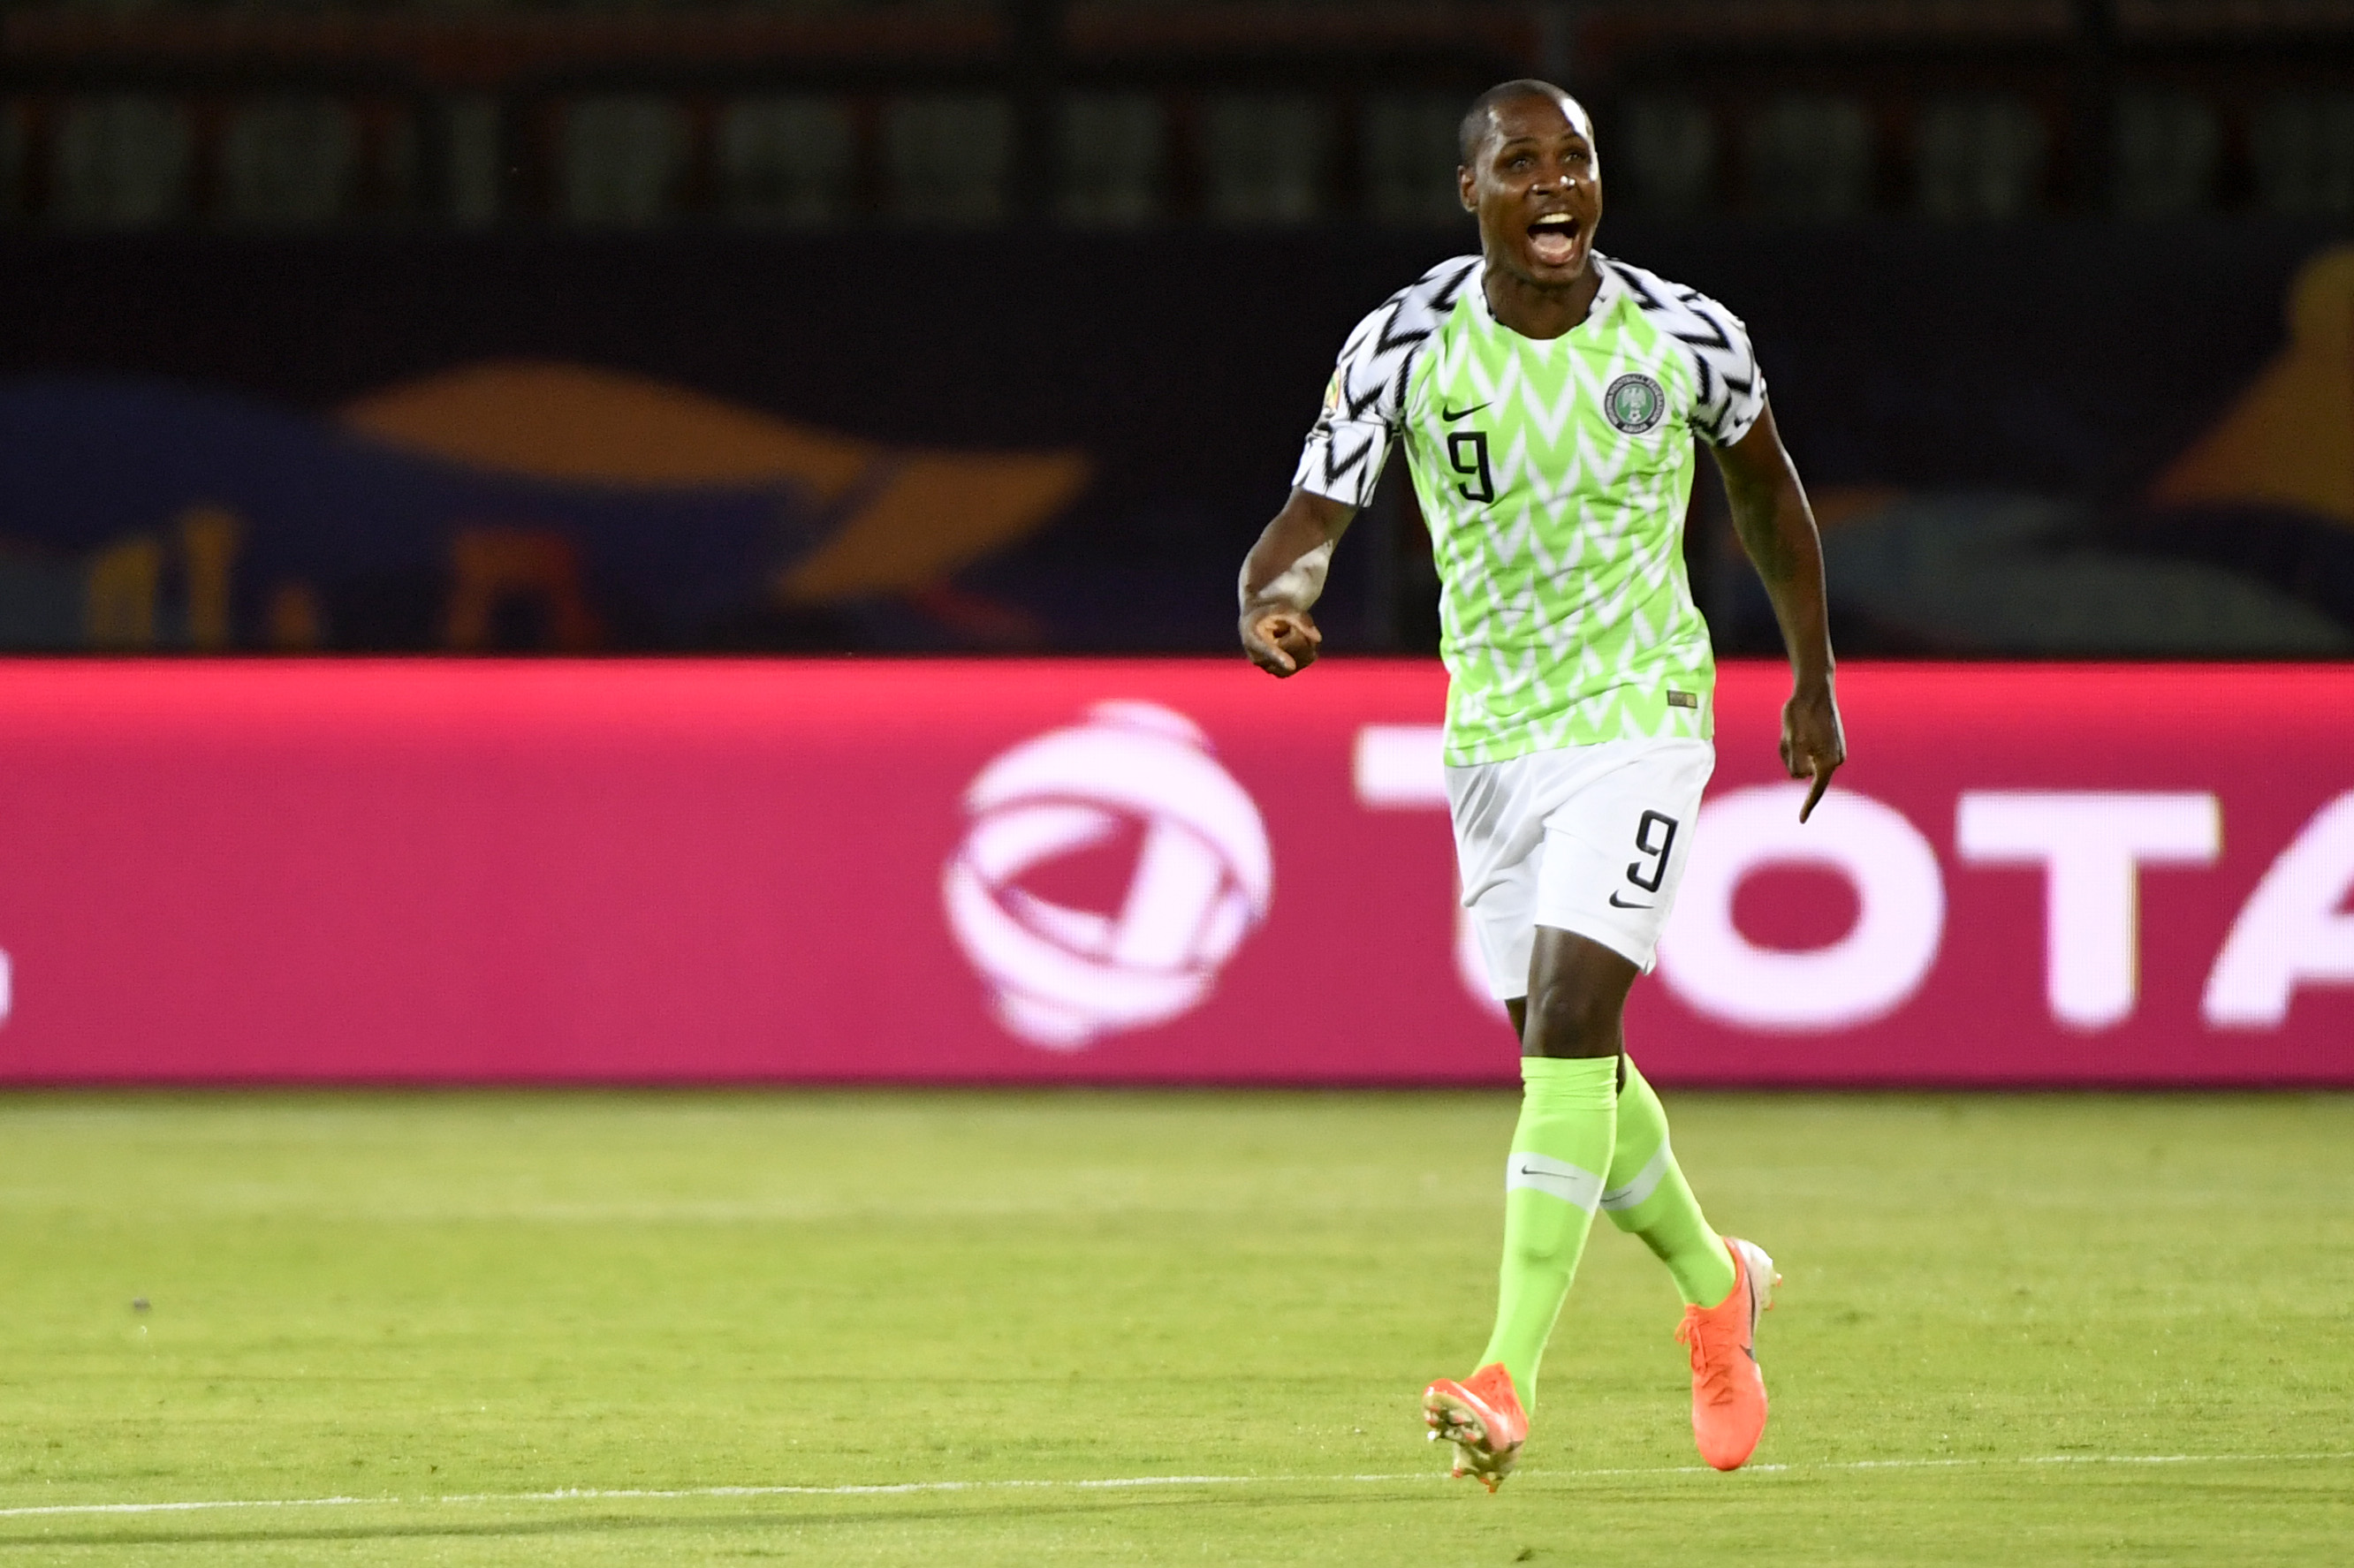 Ighalo on Manchester United's radar (Photo by KHALED DESOUKI/AFP via Getty Images)